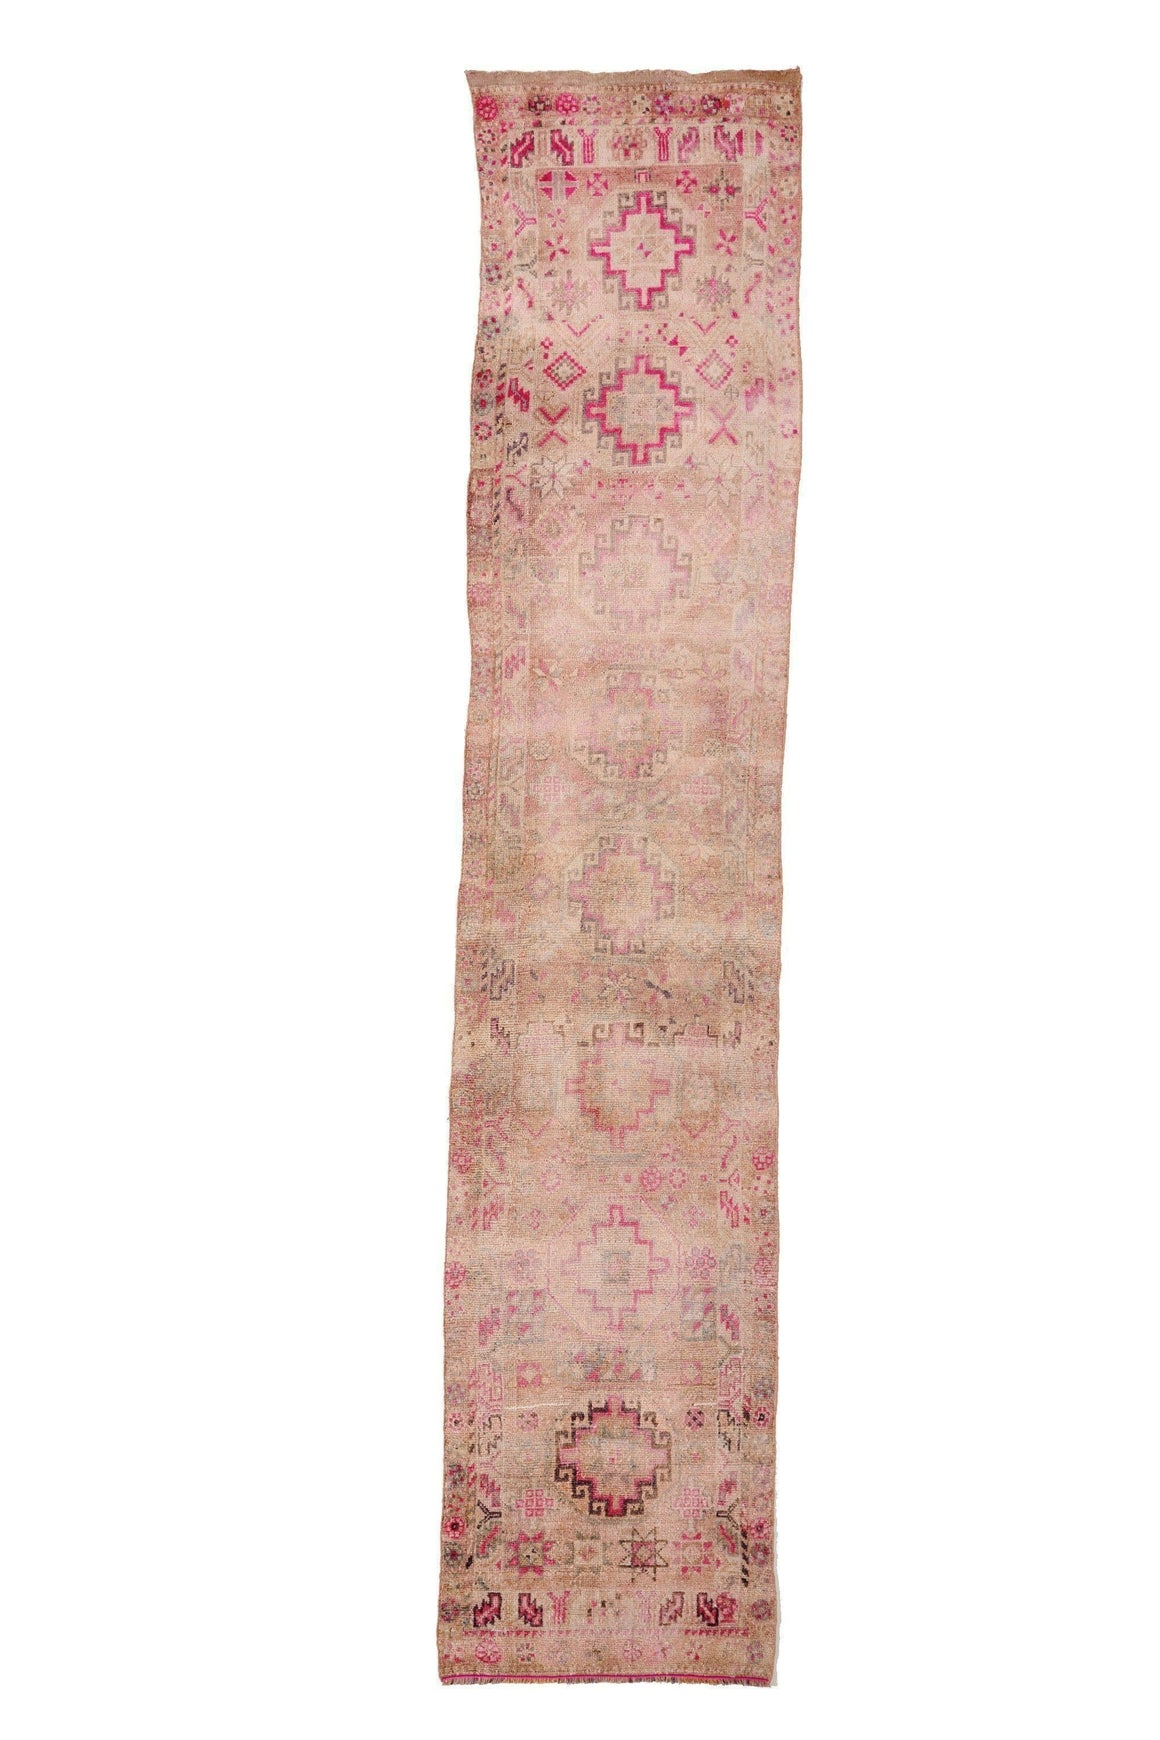 "'Ariel' Turkish Vintage Runner - 2'8"" x 13'4"" *On Hold* - Canary Lane - Curated Textiles"